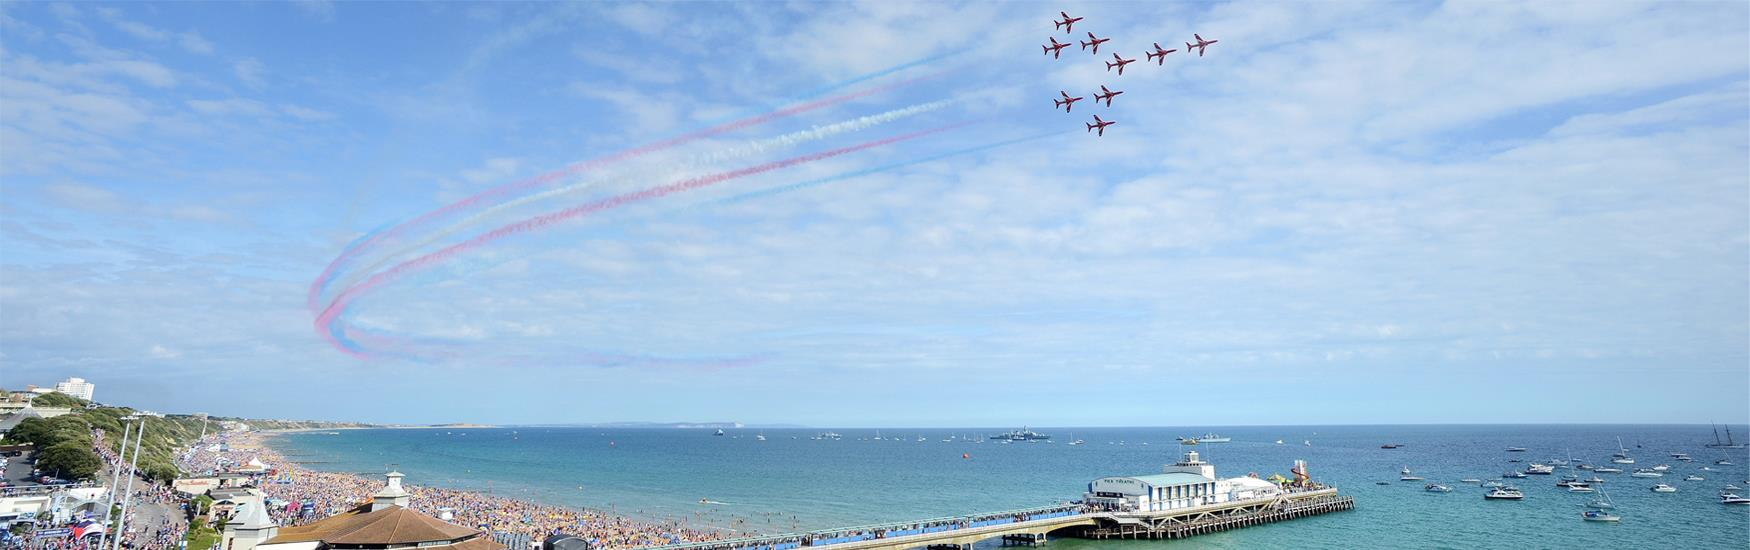 Bournemouth Air Festival: 30 August - 2 September 2018